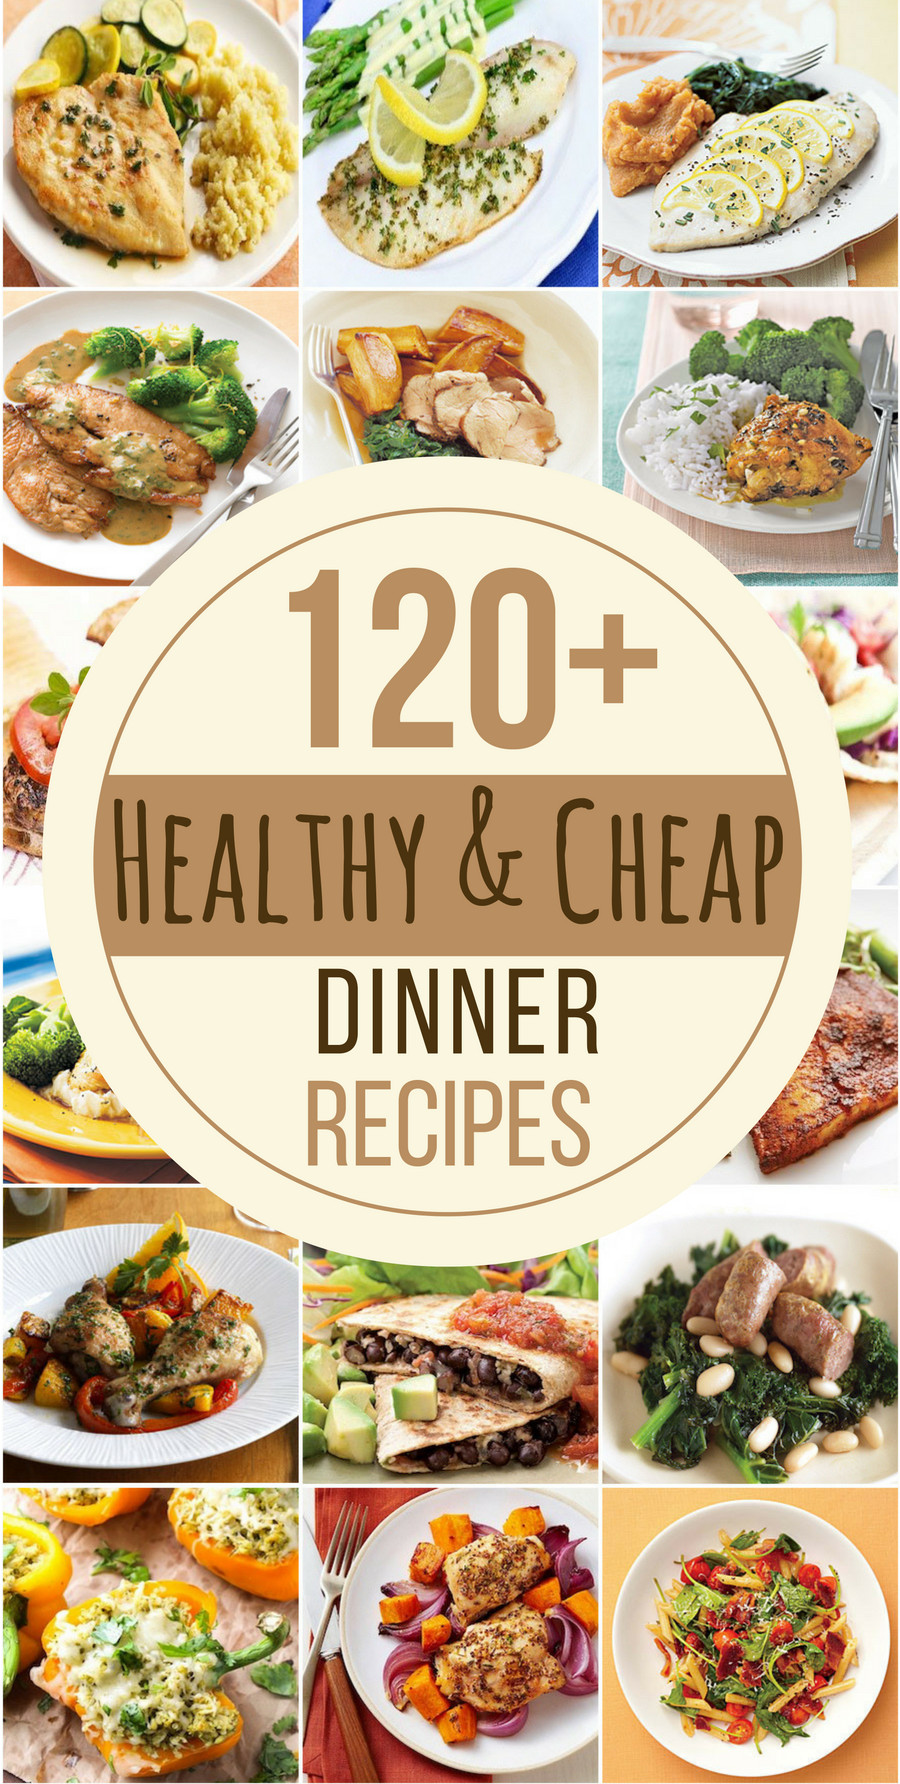 Healthy Cheap Dinners  120 Healthy and Cheap Dinner Recipes Prudent Penny Pincher